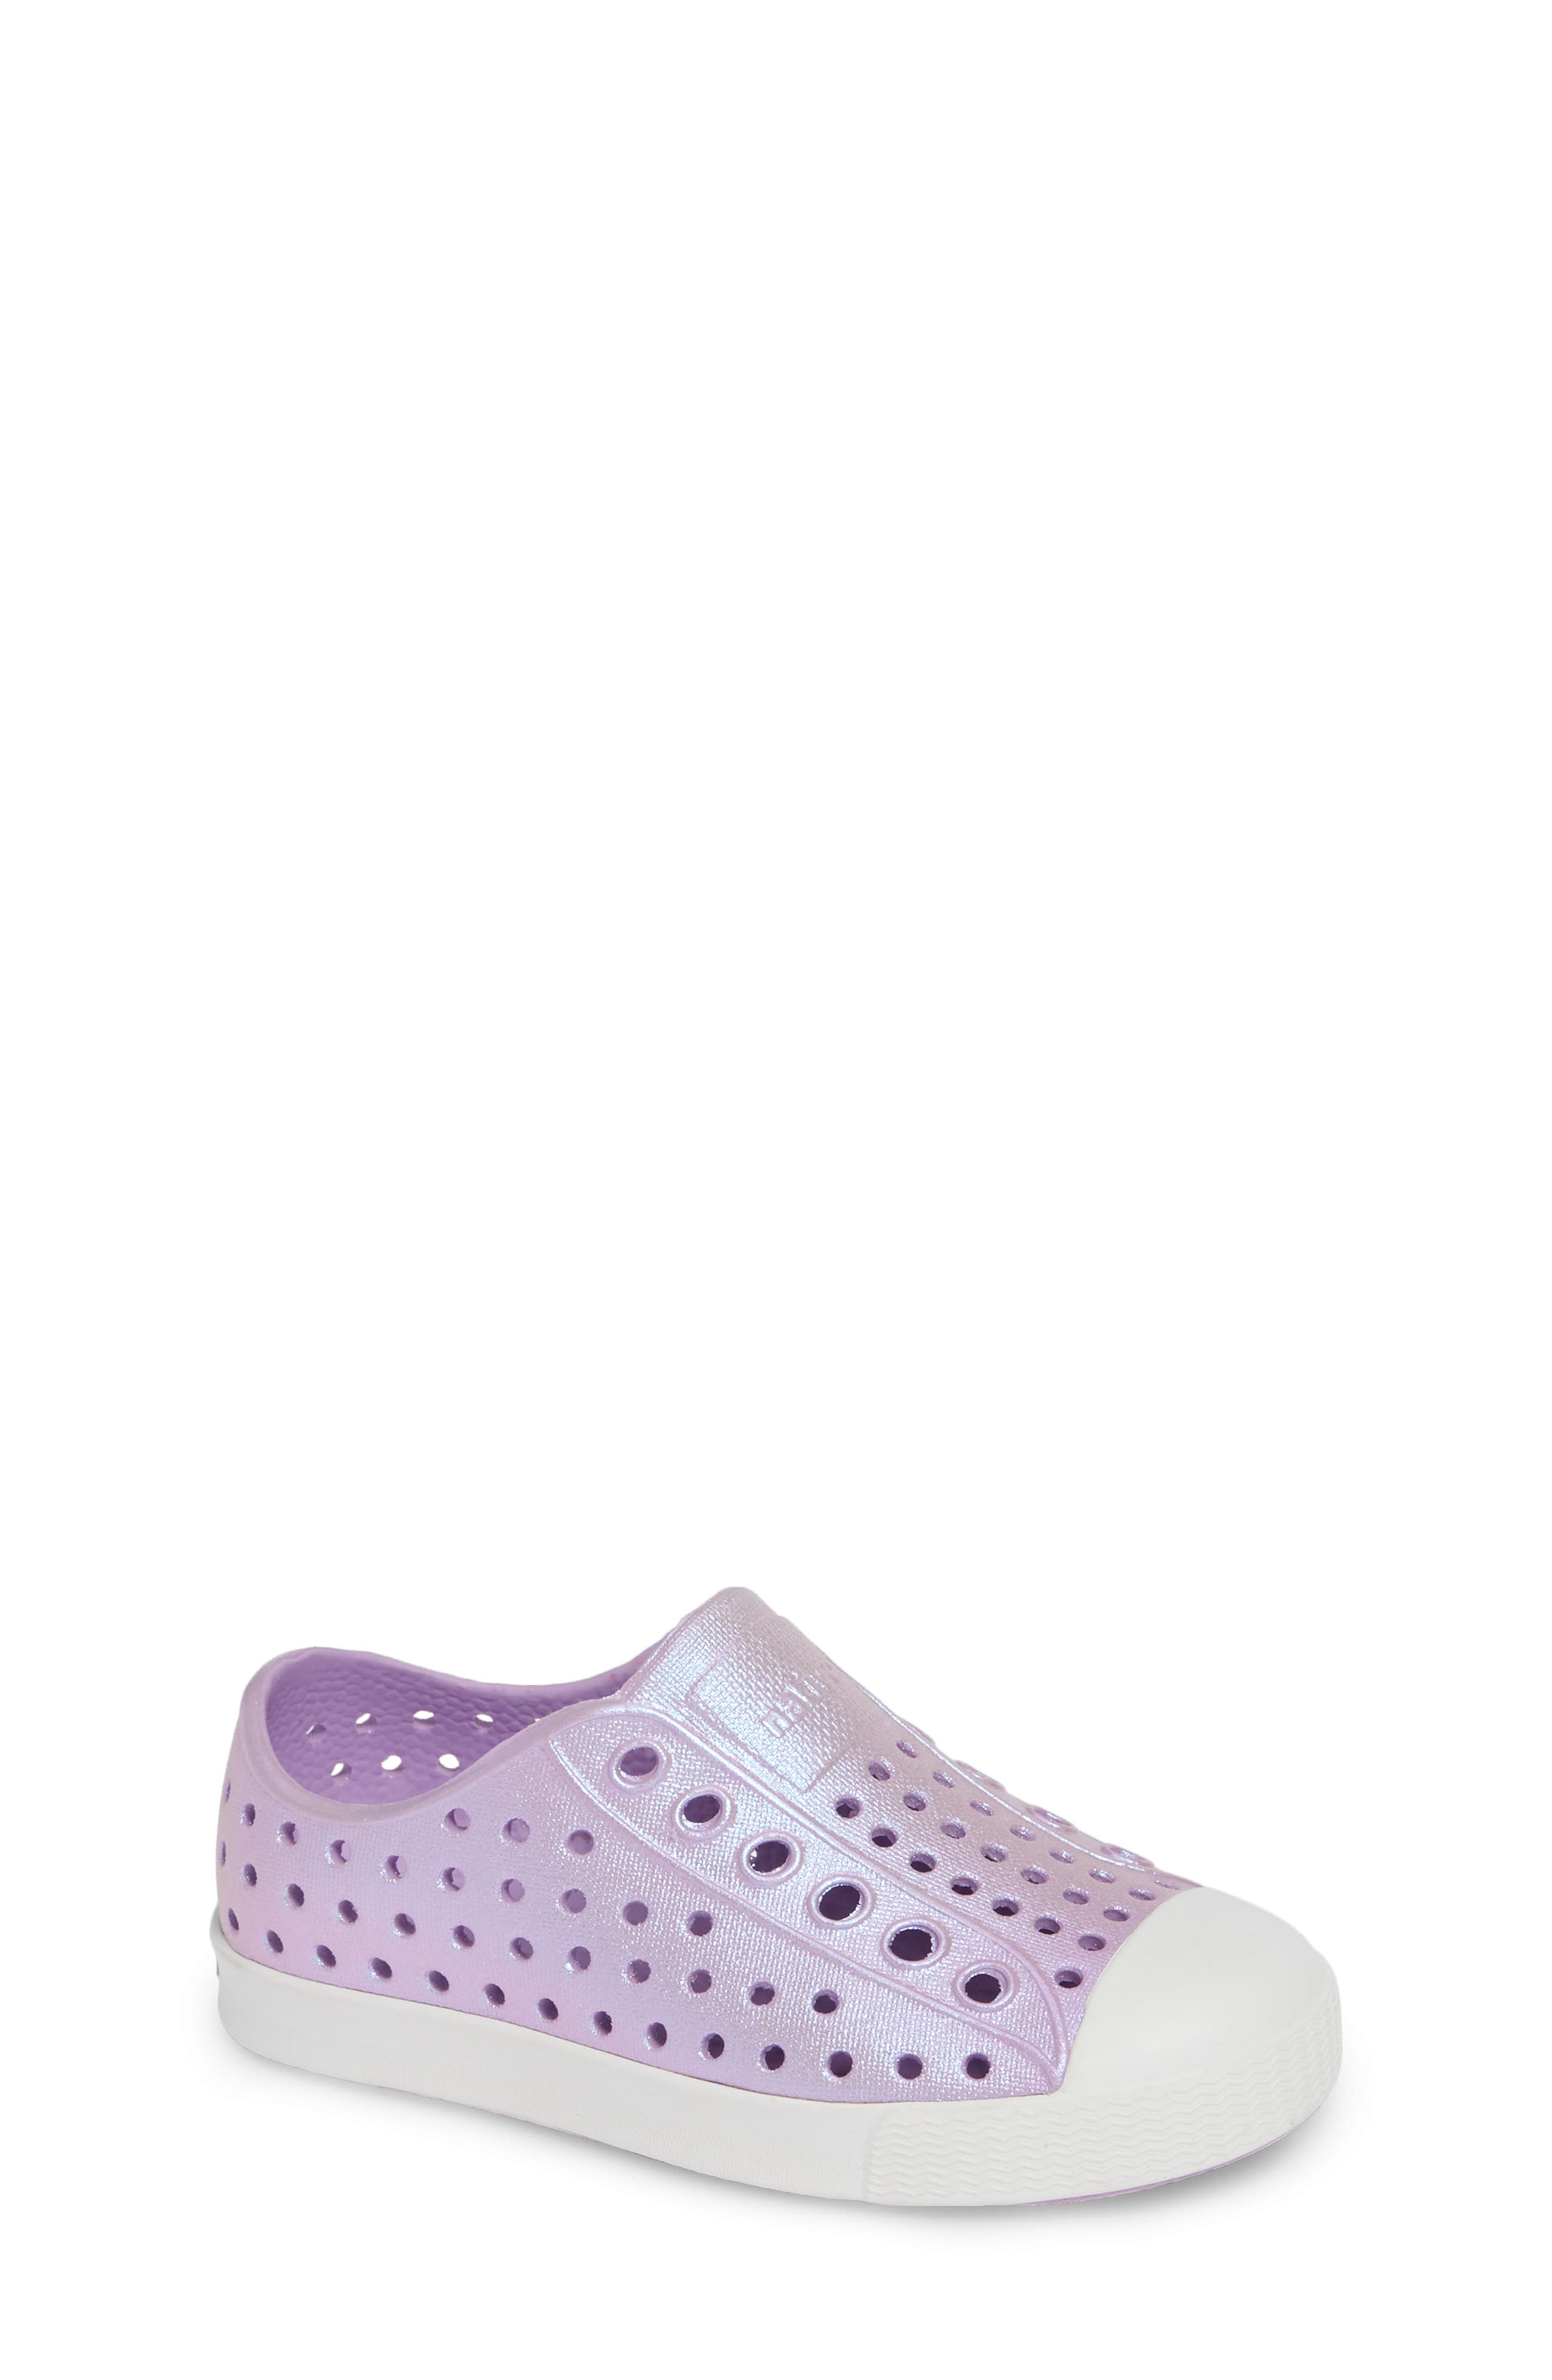 NATIVE SHOES Jefferson Iridescent Slip-On Vegan Sneaker, Main, color, LAVENDER/ SHELL WHITE/ GALAXY